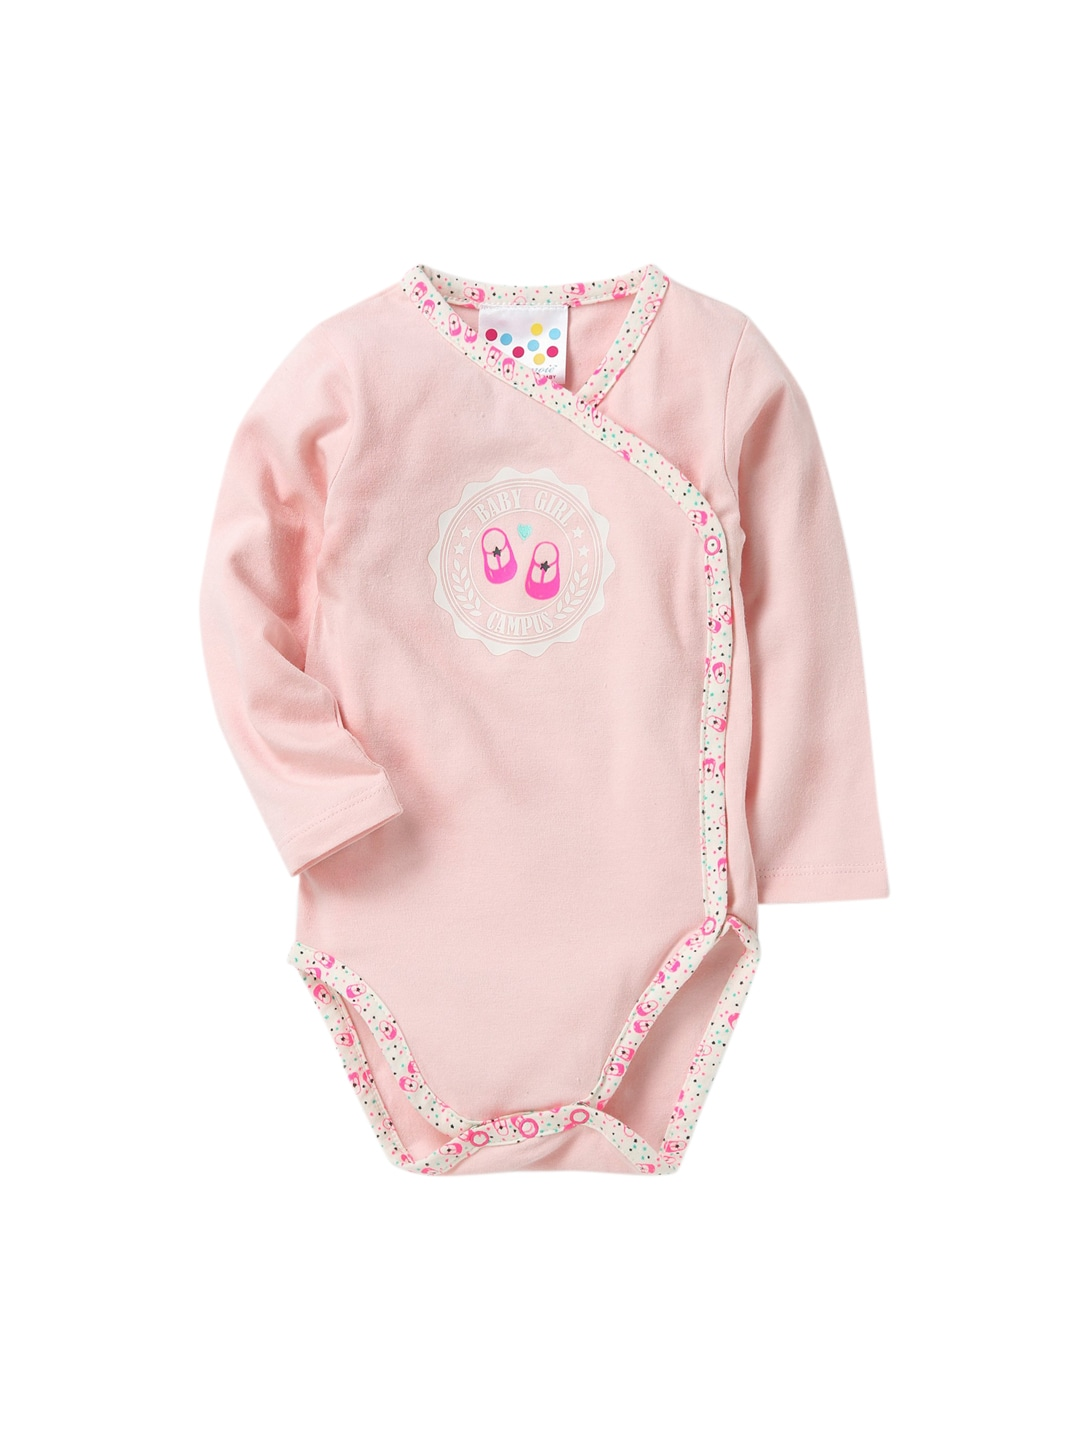 Eimoie Infant Pink Printed Bodysuit image